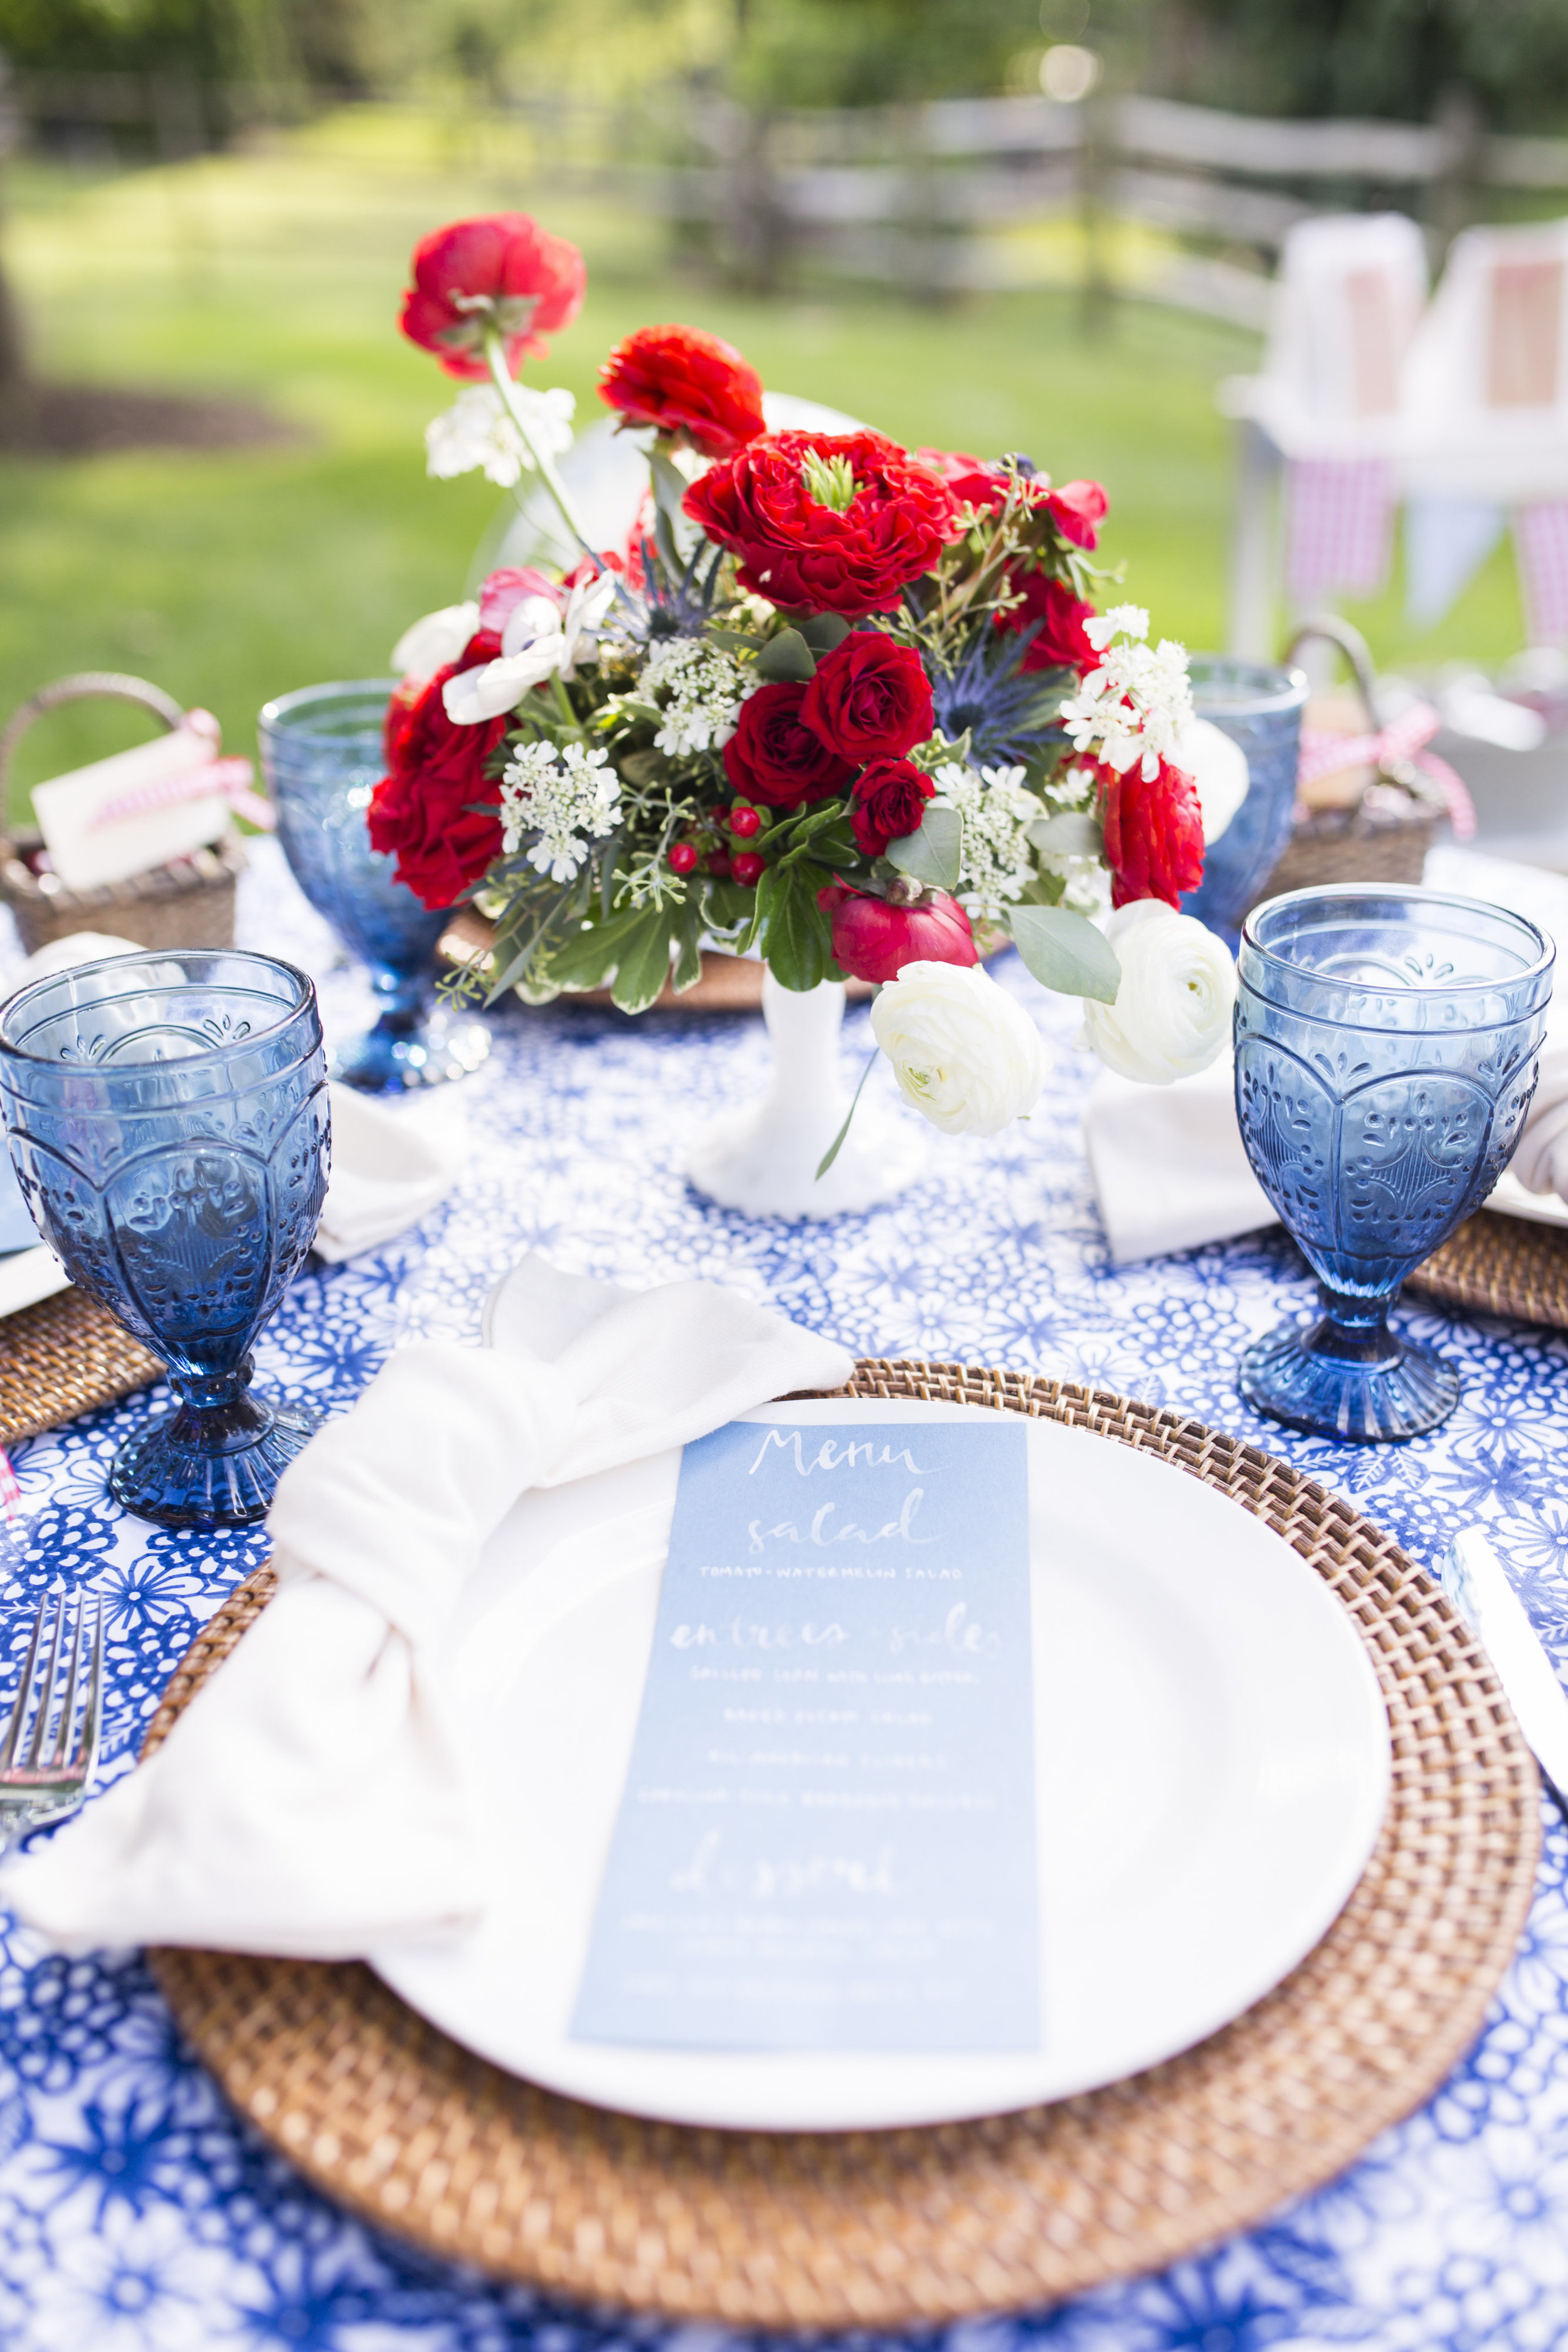 Fourth of July Party and Decor Ideas by Cassandra Clair of Event Prep